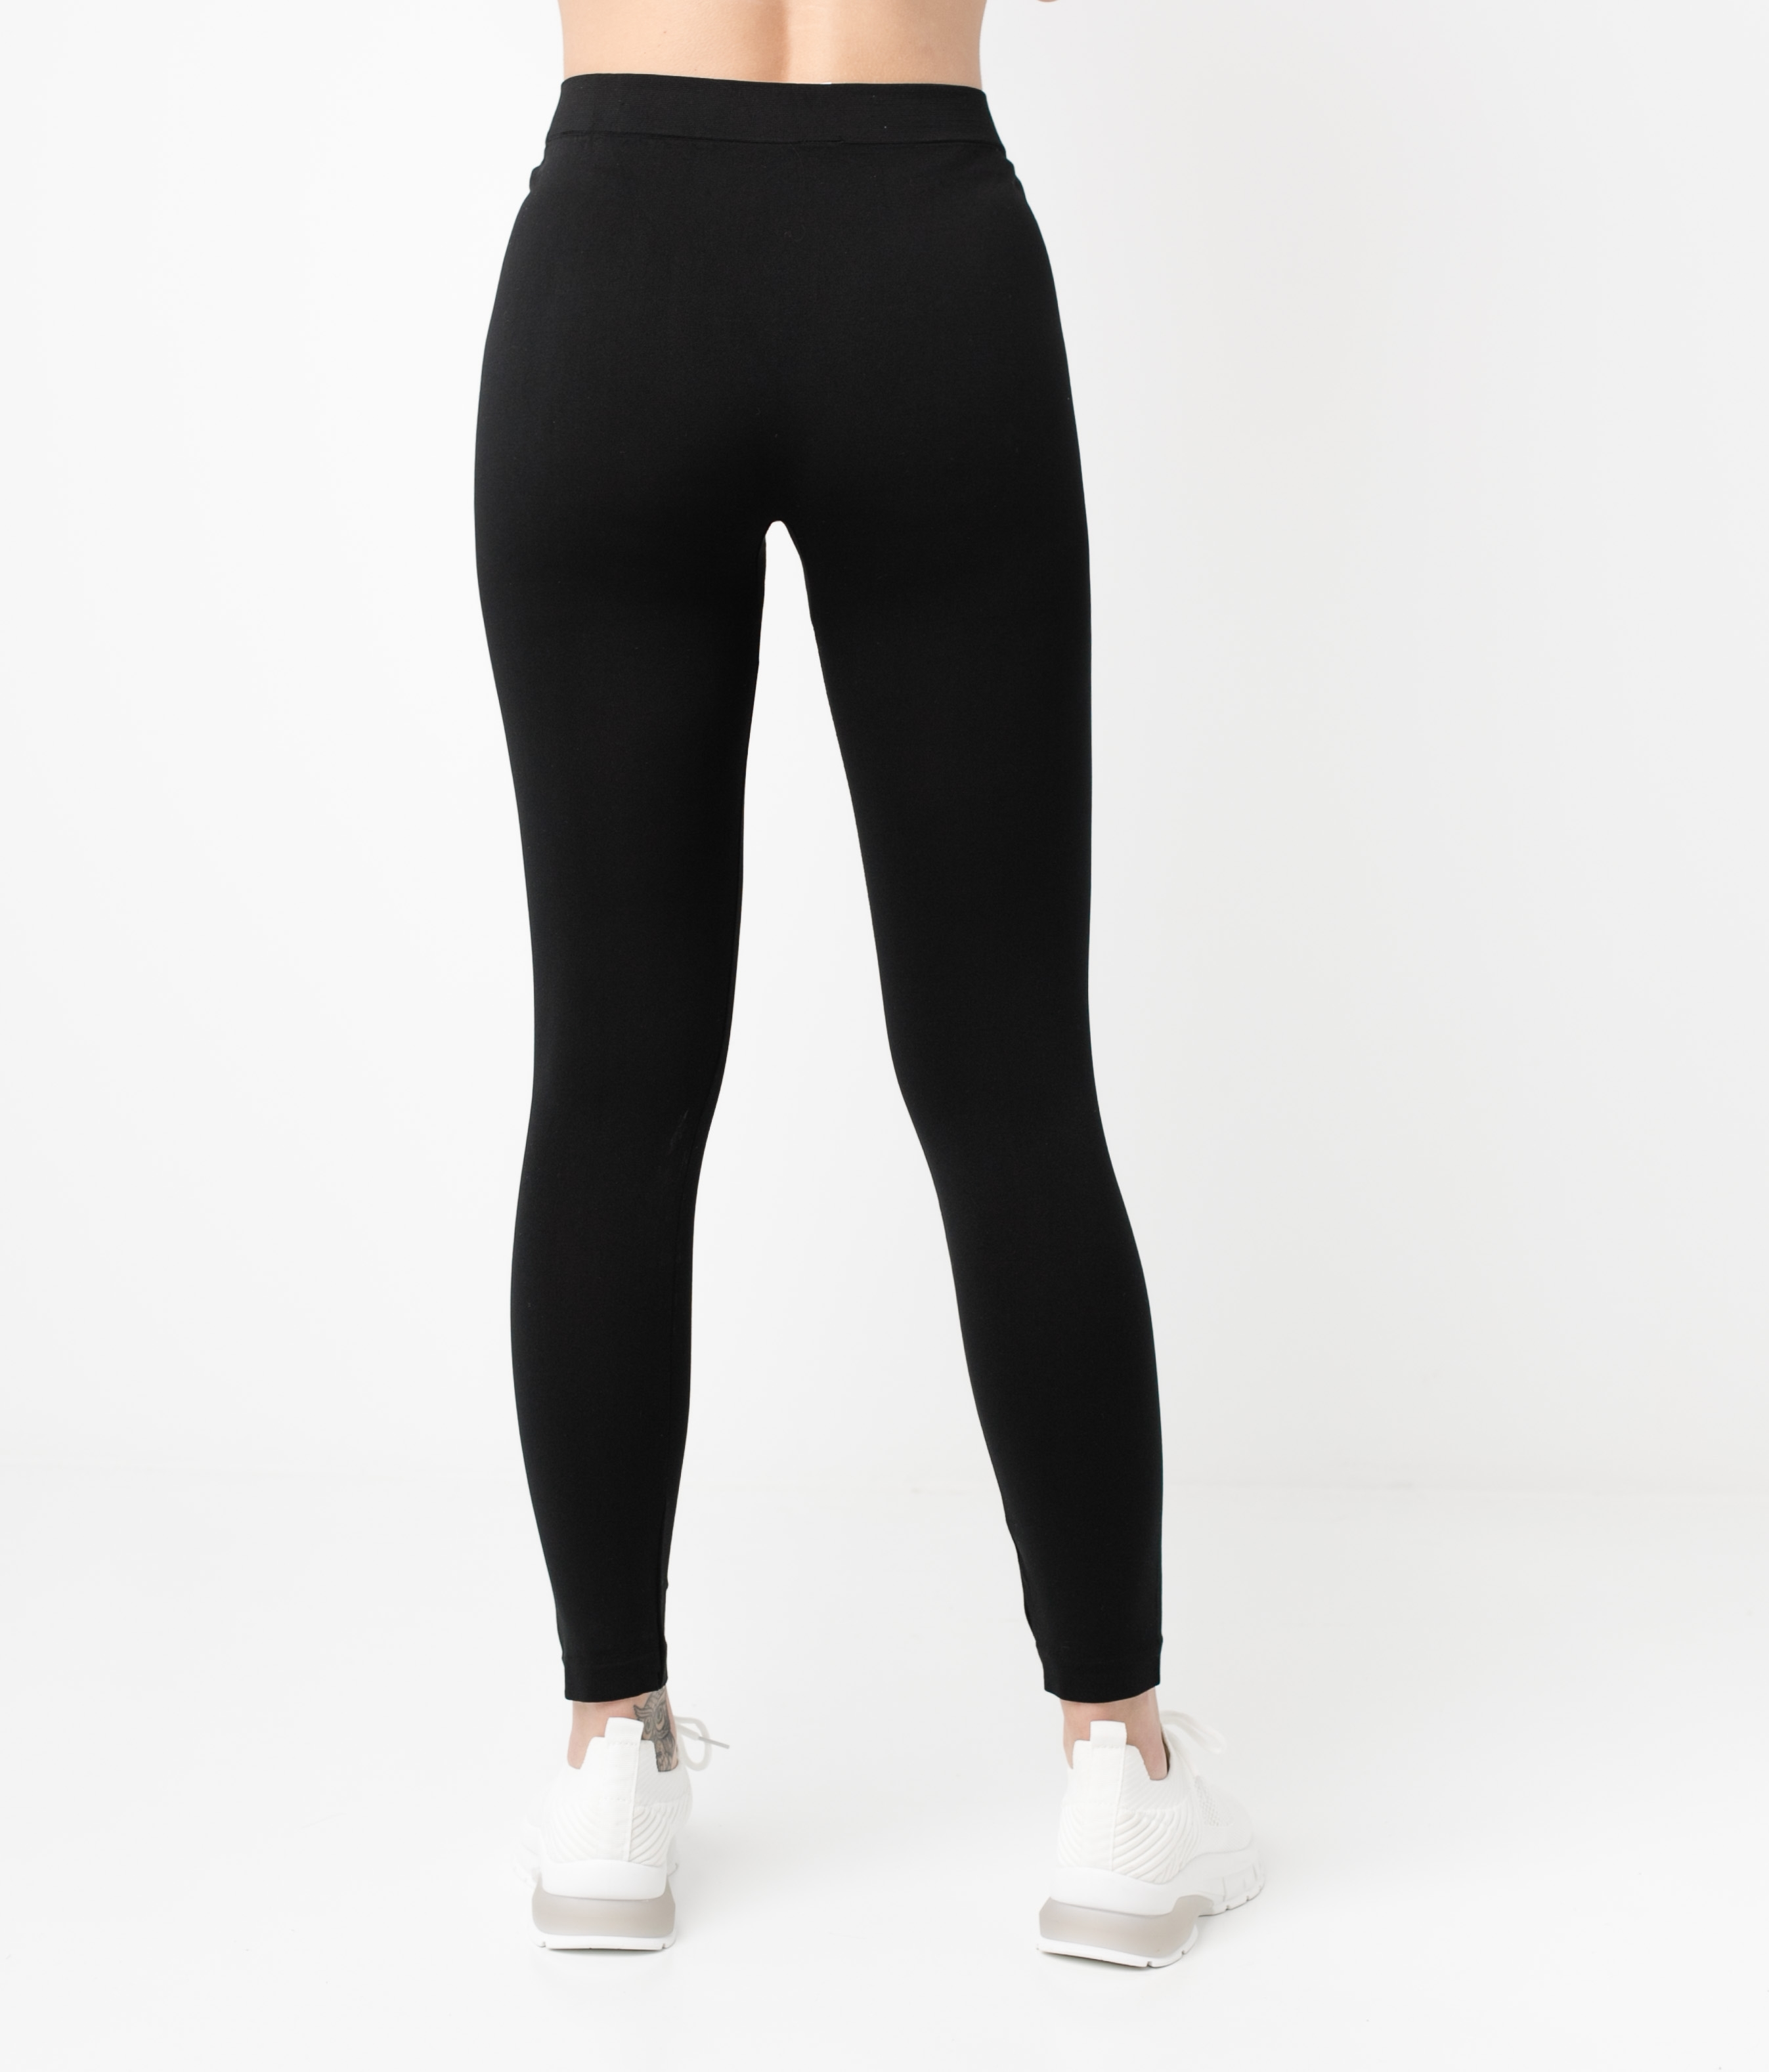 Leggins Persi - Black